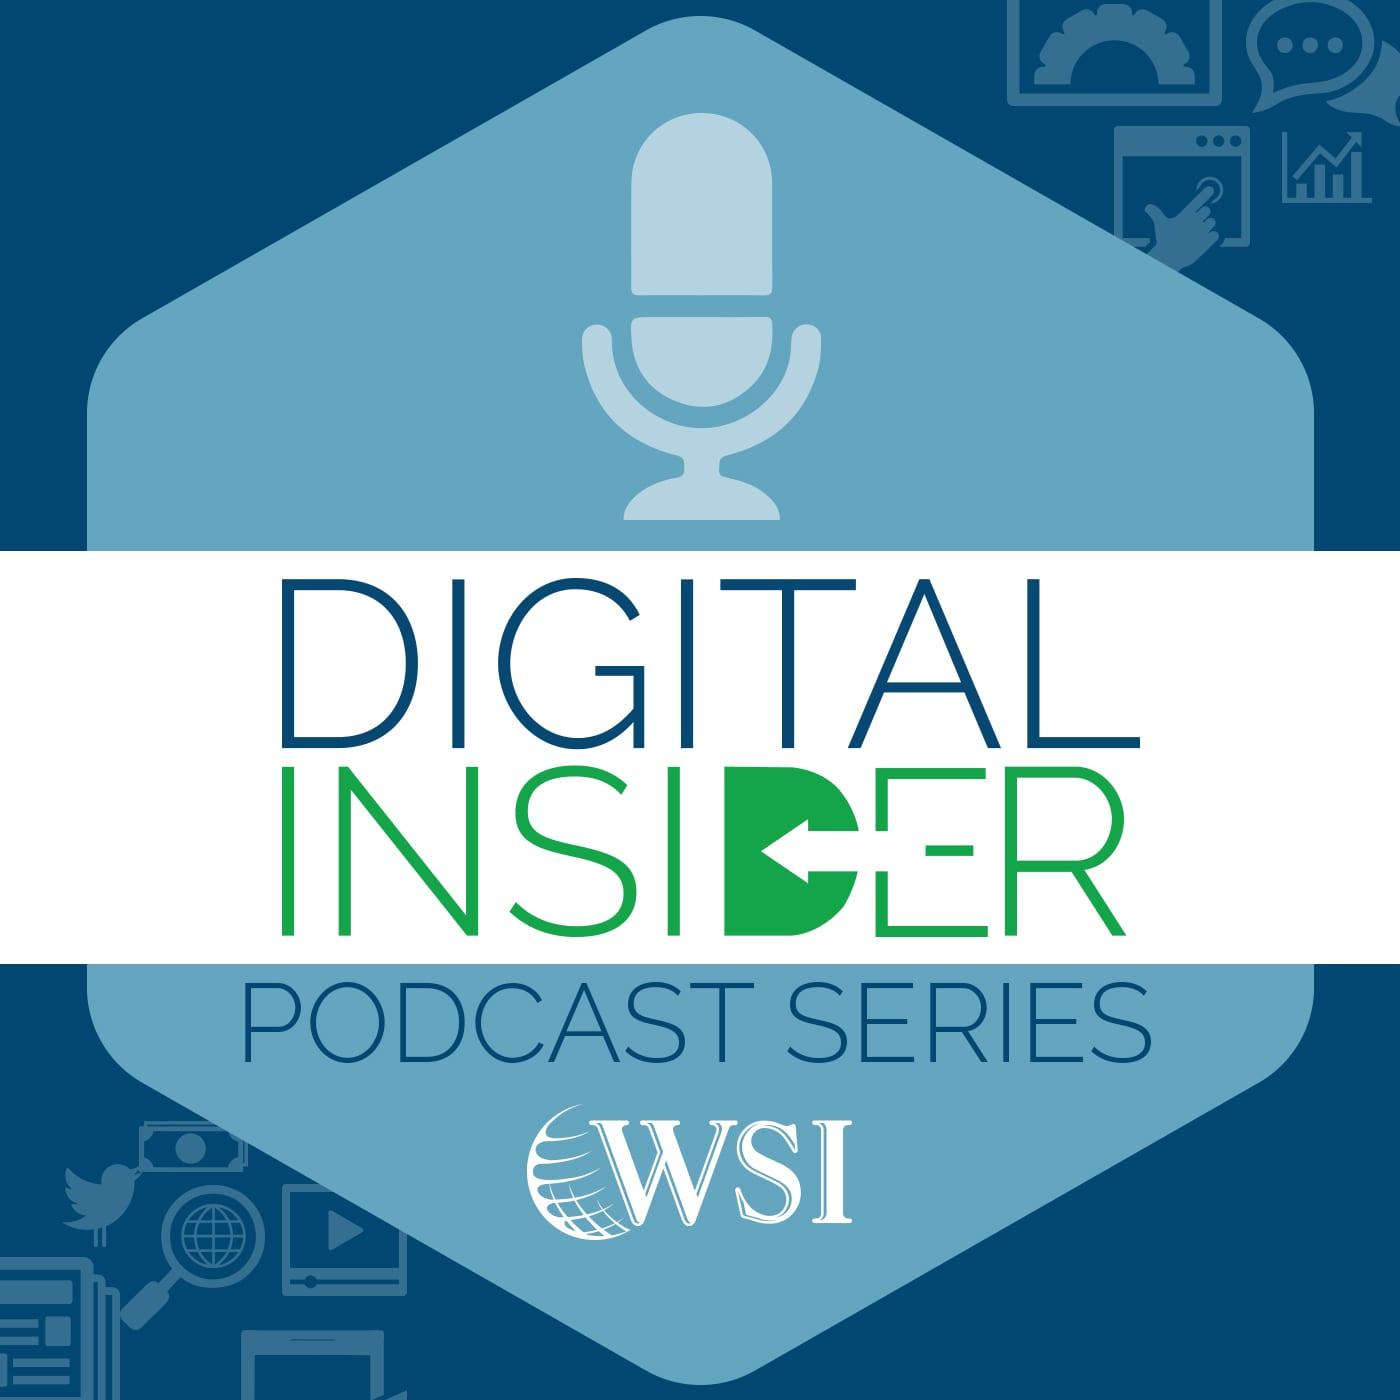 WSI Digital Insidier Podcast Series